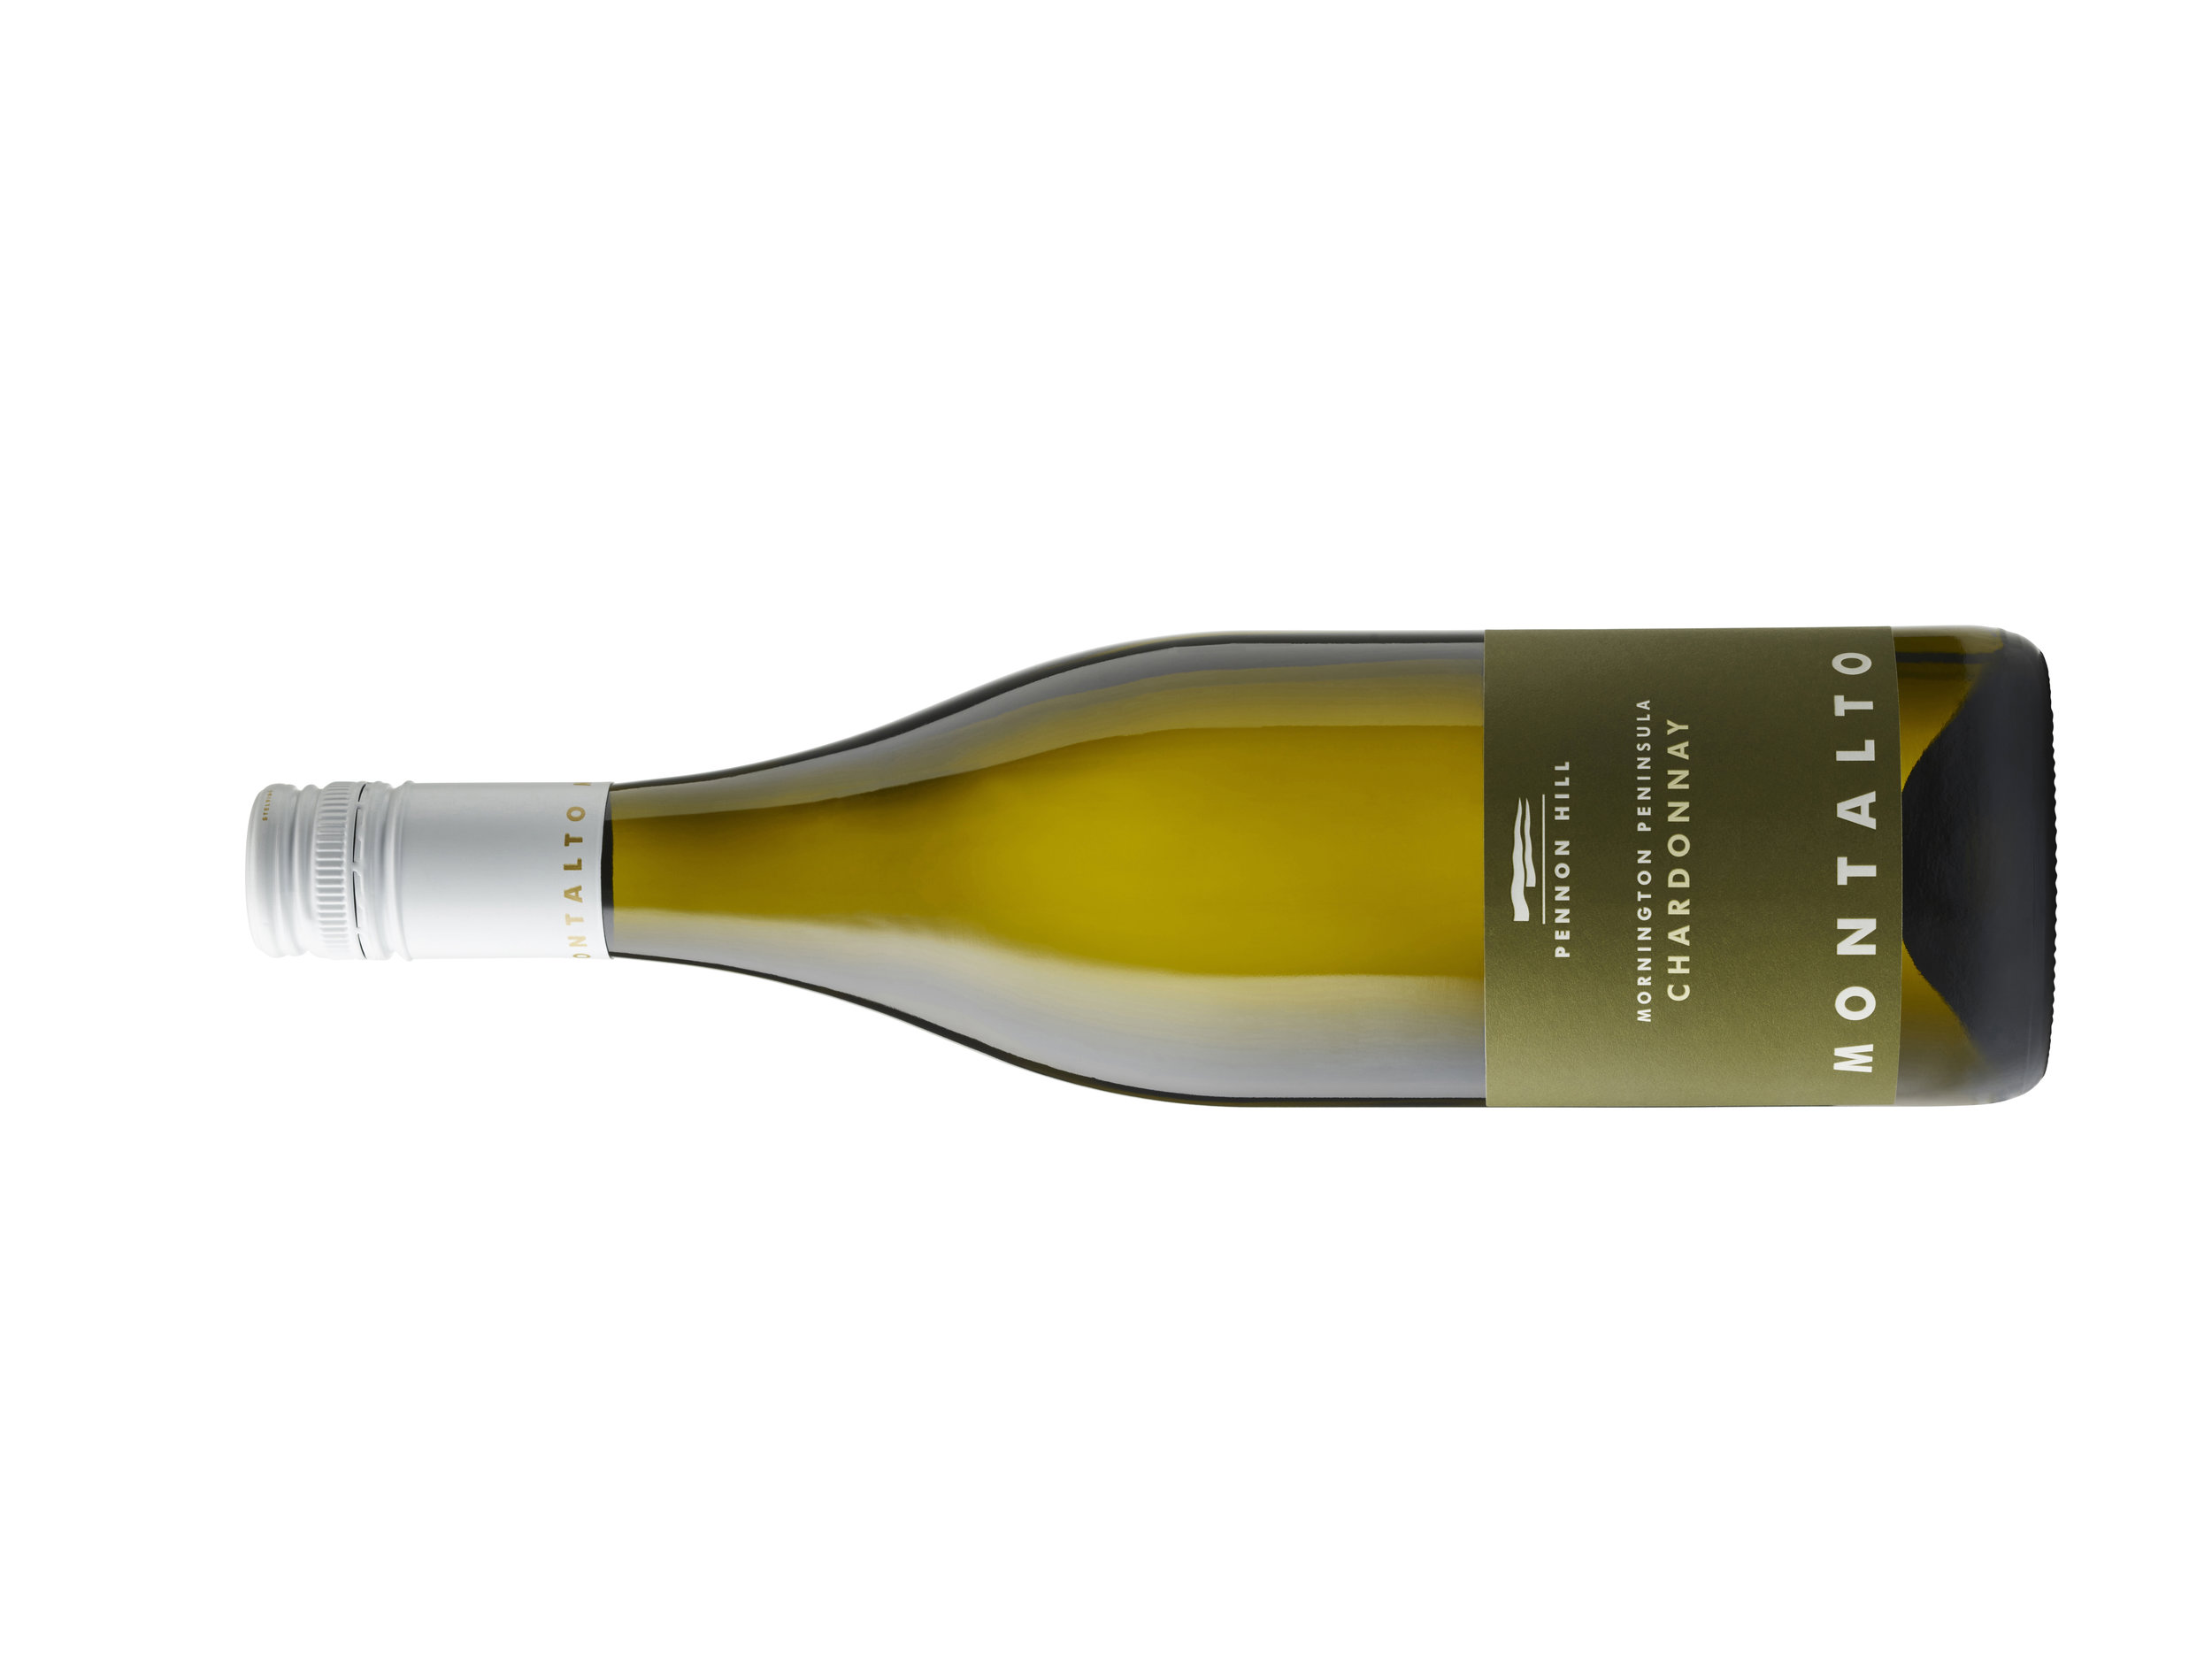 Montalto Pennon Hill Chardonnay| モンタルト ペノン ヒル シャルドネ   モーニングトンペンニンシュラ, ペノン ヒル  ¥4,300 2017, 750ml, 13.2%  きらびやかなクオリティ。ミネラリーな特徴と白い桃のような風味が、パチパチと飛び跳ねているようです。 バランスがよくスタイリッシュ。エレガントさもあり、これがフィニッシュまで長く続いていきます。    Campbell Mattisson 95 points   Scintillating quality, and value. This crackles with flinty, minerally character and pops with white peach-like flavour. It's balanced, it's stylish, it's elegant and it drives long through the finish. You can ask for little more.   James Suckling 95 points   Very impressive wine with a composed, assertive and complex nose pinned to mouth-watering aromas of bright lemons and ripe peach fruits. It's a little chalky, too. The palate has a very composed, tight-knit structure with plenty of flavors in the yellow-peach and lemon spectrum. Great balance, length and detail.